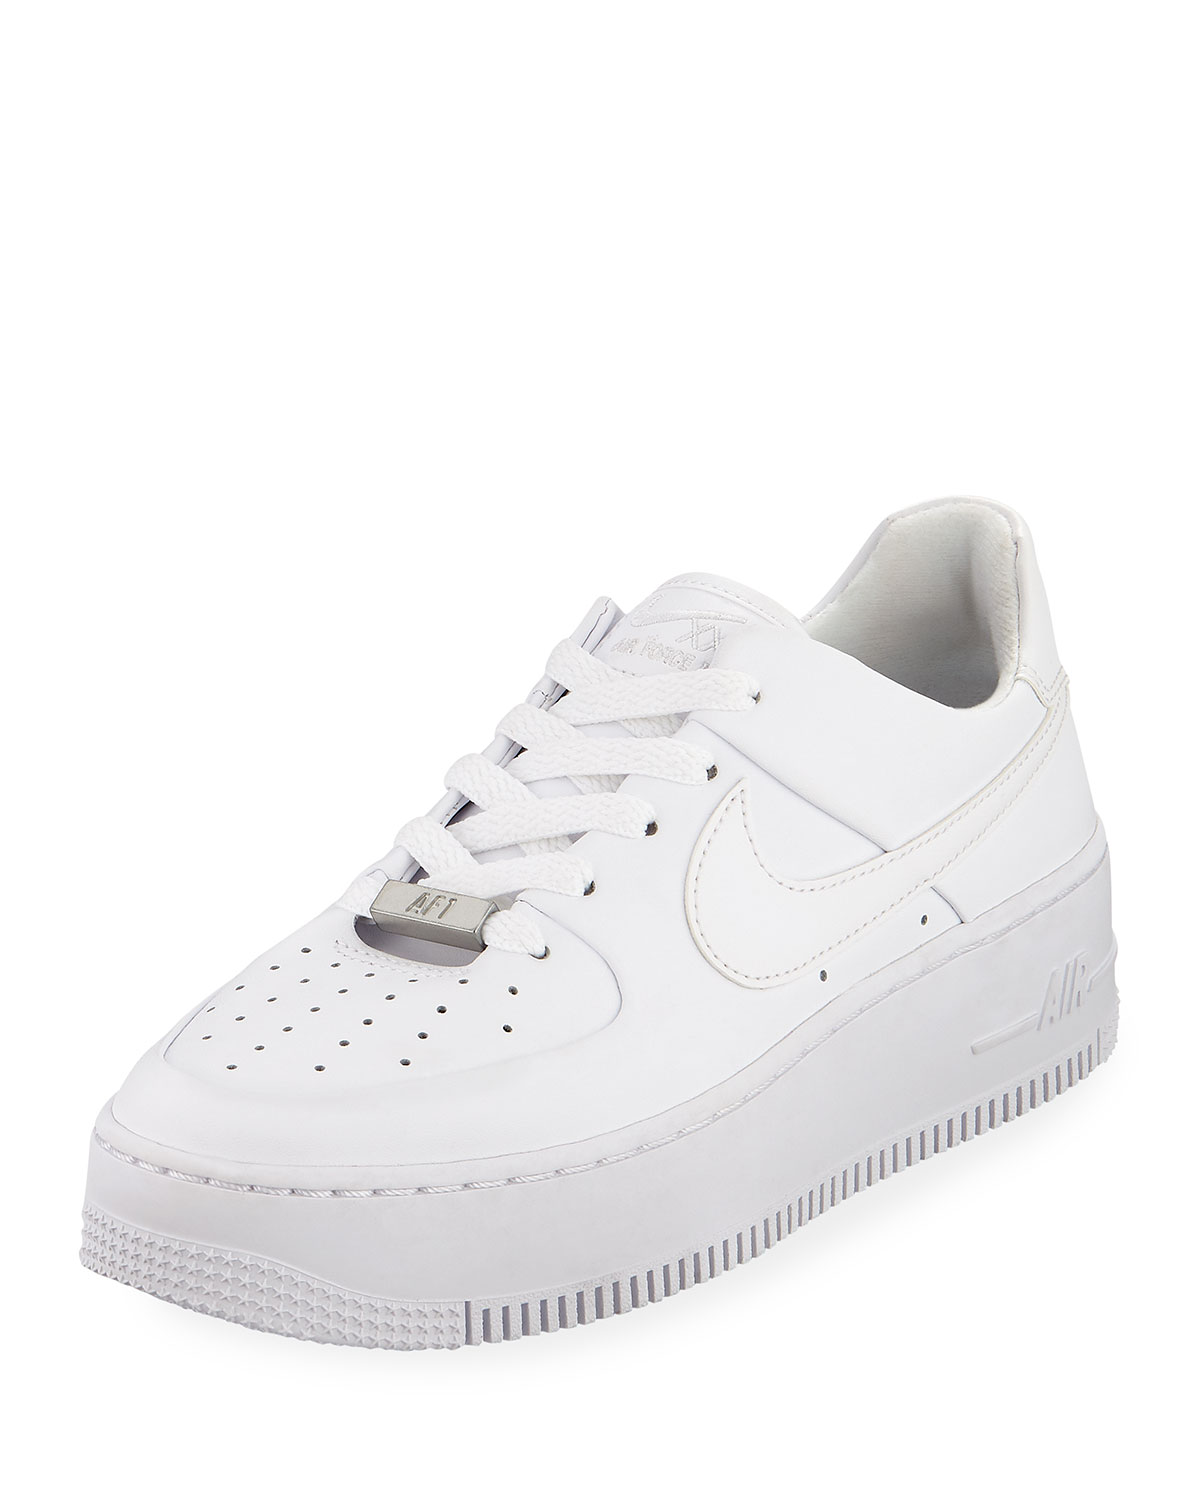 3d82362c2f9 Nike Air Force 1 Sage Low-Top Sneakers